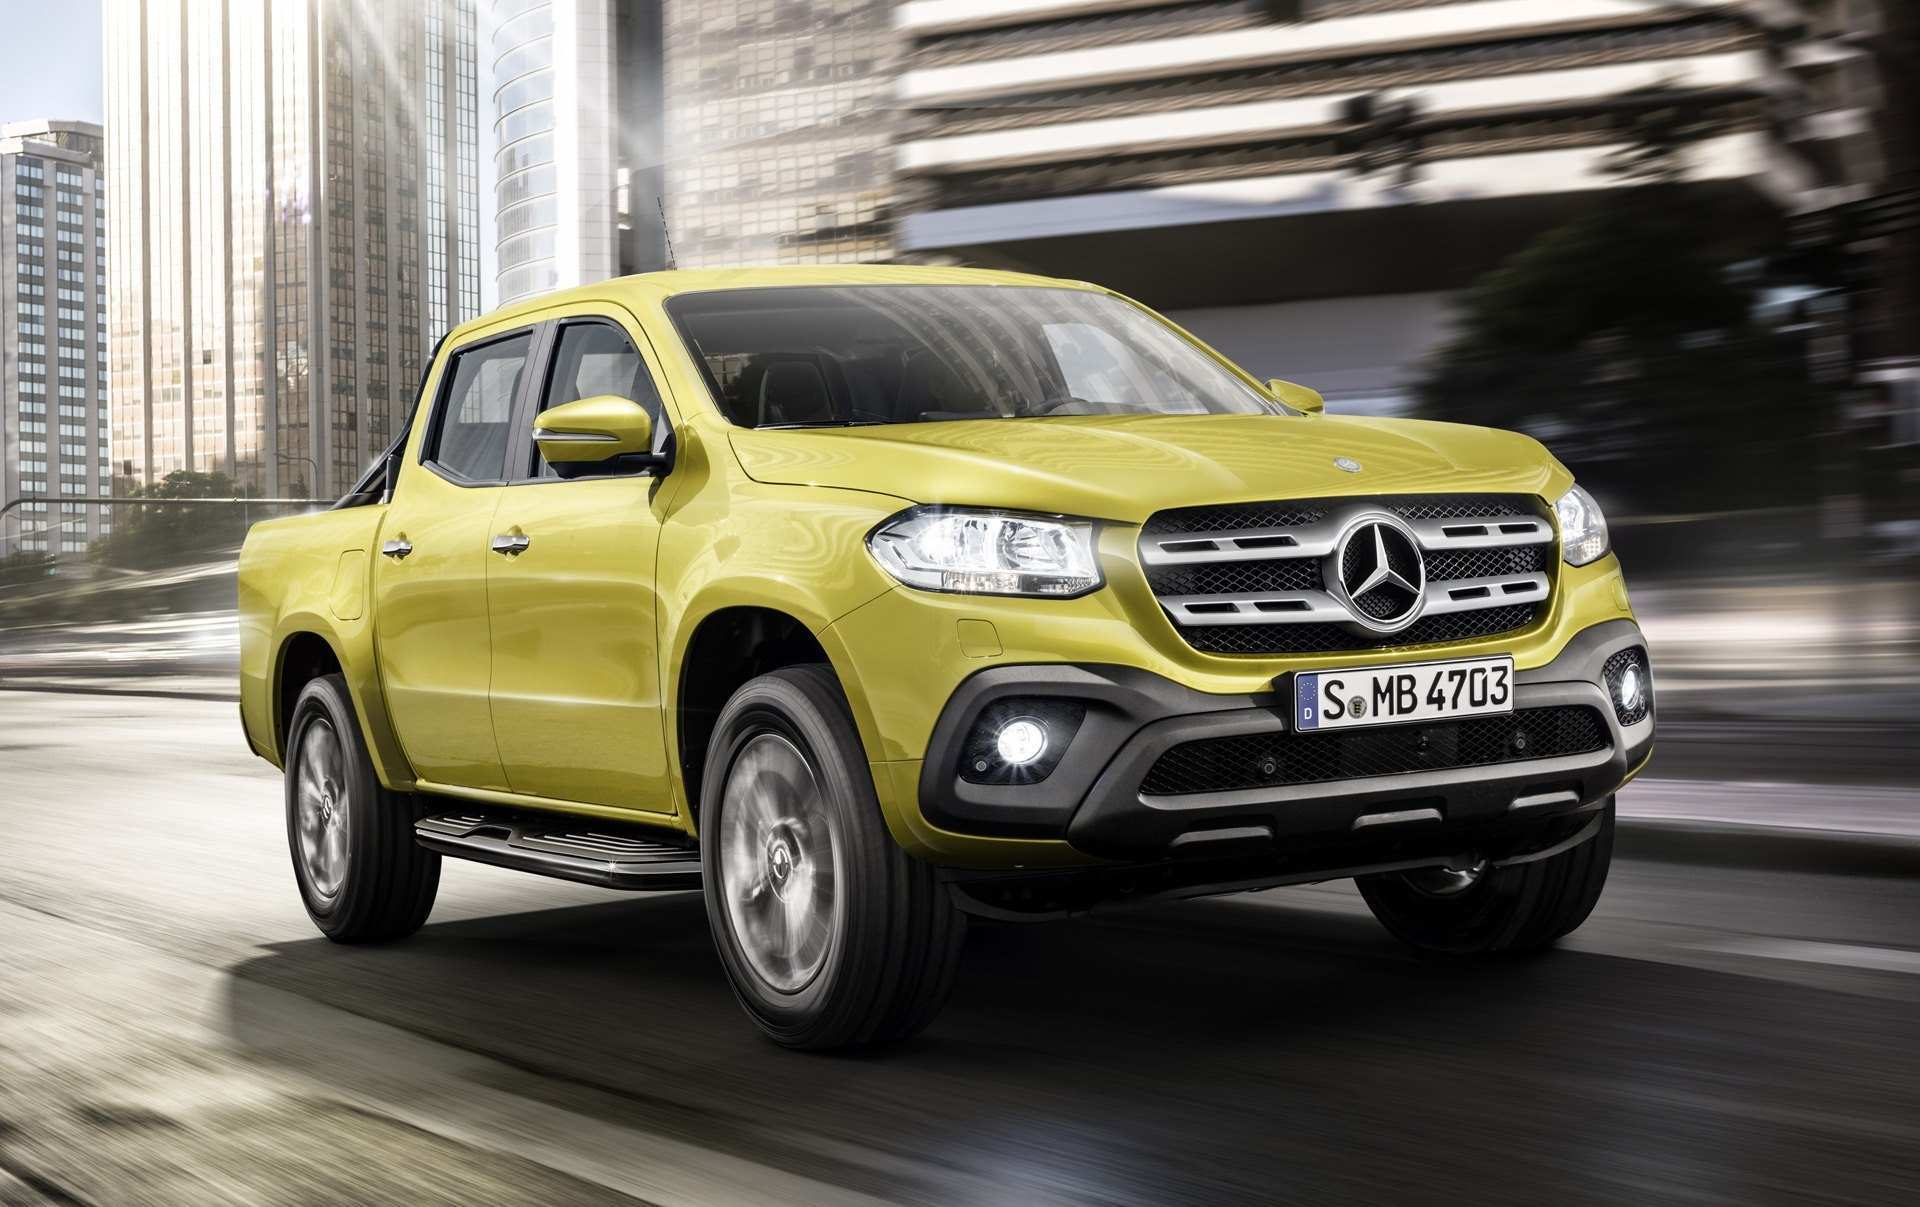 41 Gallery of 2019 Mercedes X Class Overview with 2019 Mercedes X Class